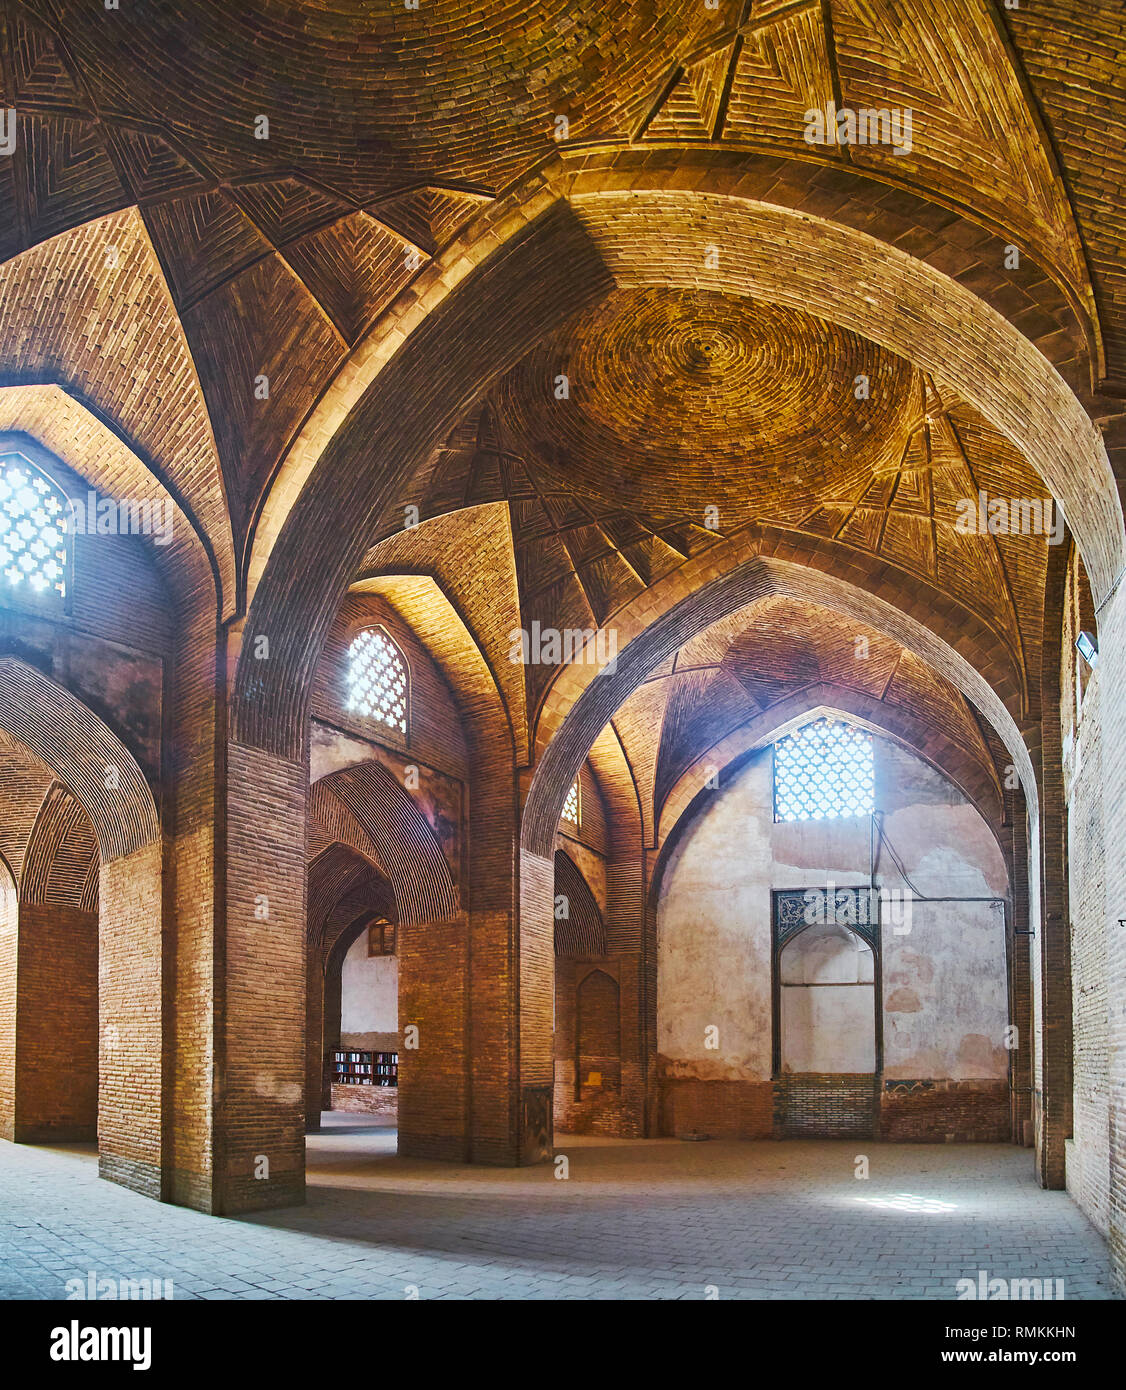 ISFAHAN, IRAN - OCTOBER 21, 2017: The medieval brick Northern shabestan of Jameh Mosque with scenic vault, massive columns and Persian screens, provid - Stock Image